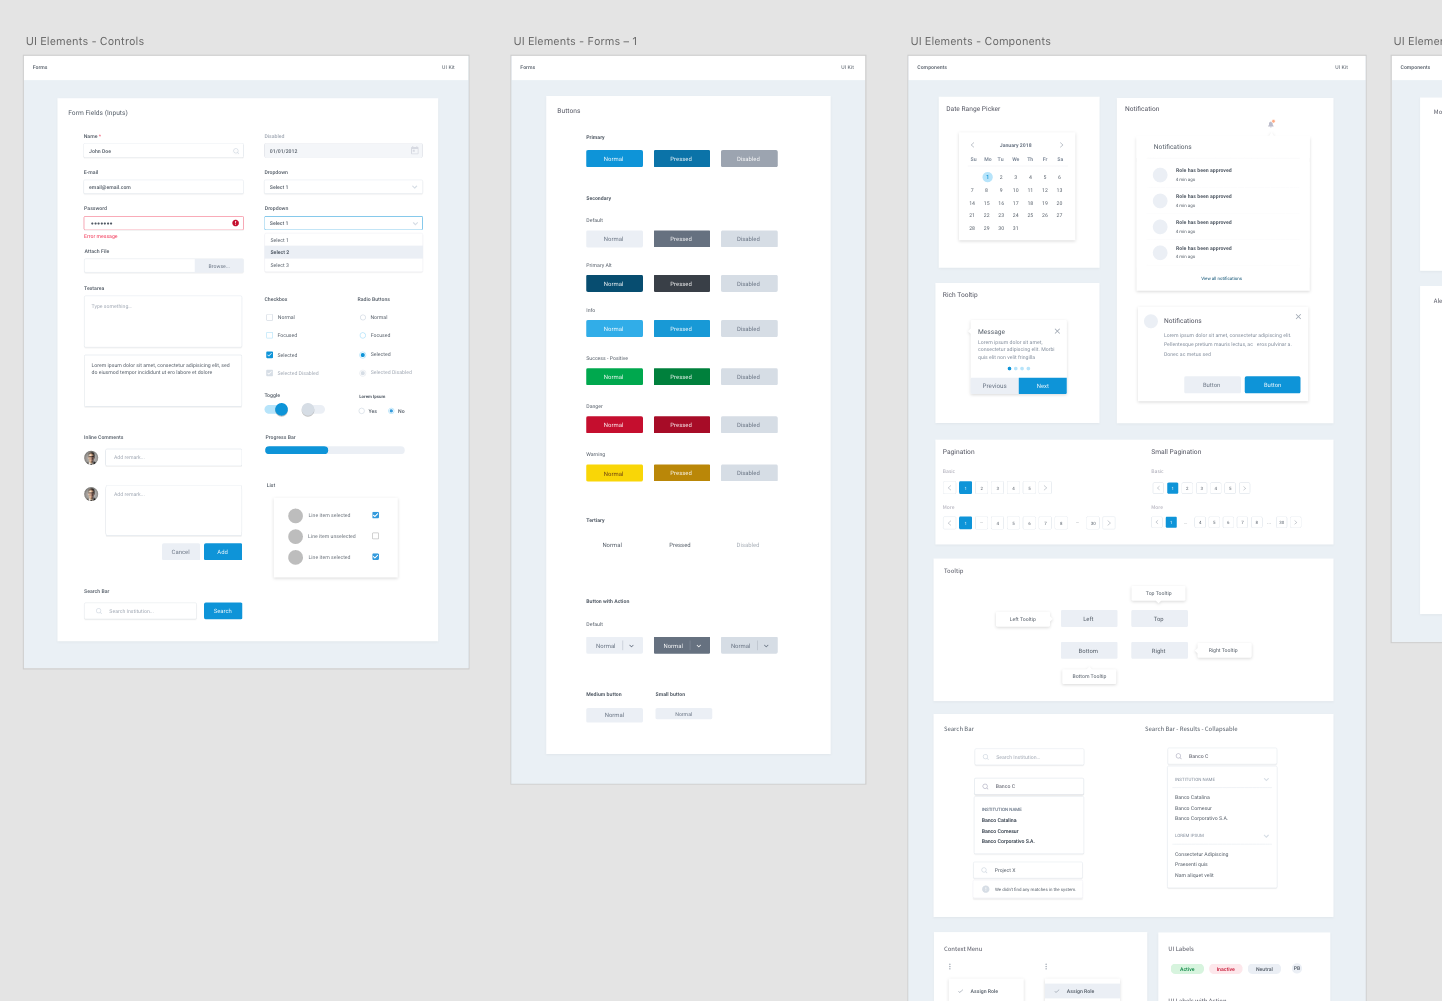 Screenshot of Adobe XD artboards showing a list of User Interface components